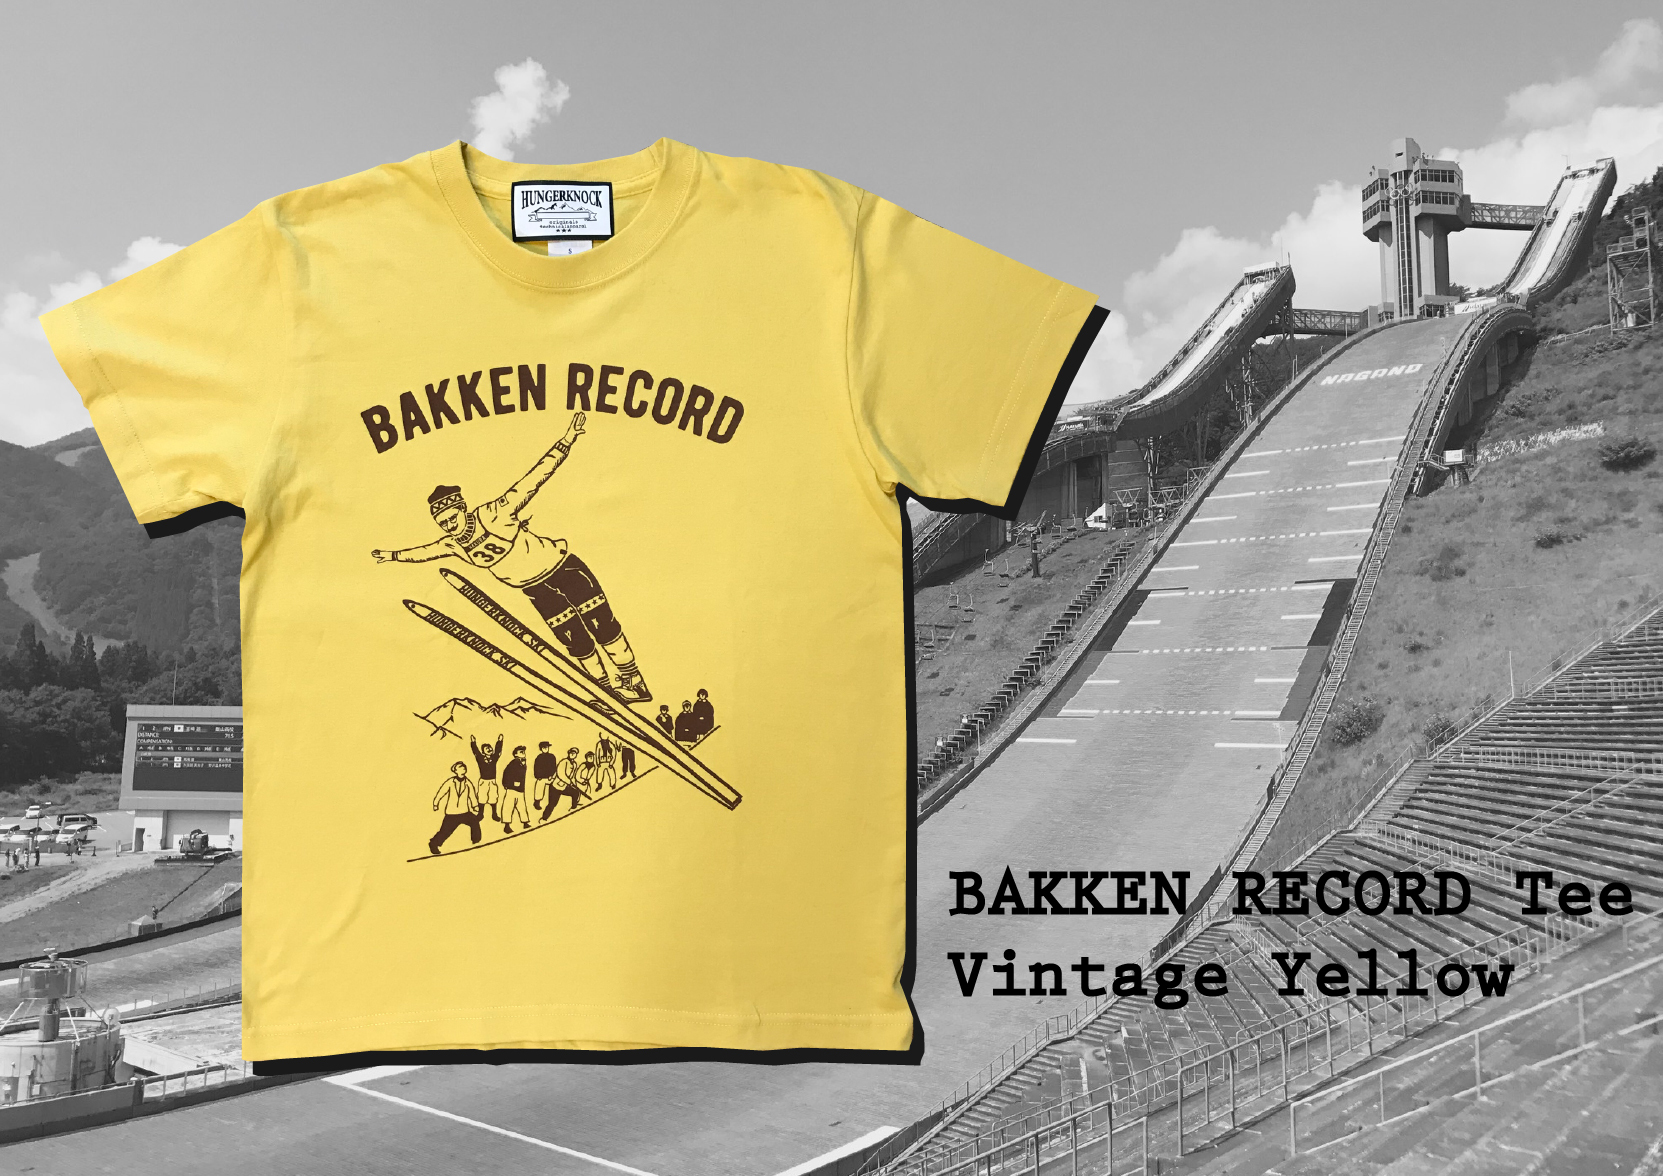 Bakkenn Record Tee / vintage yellow